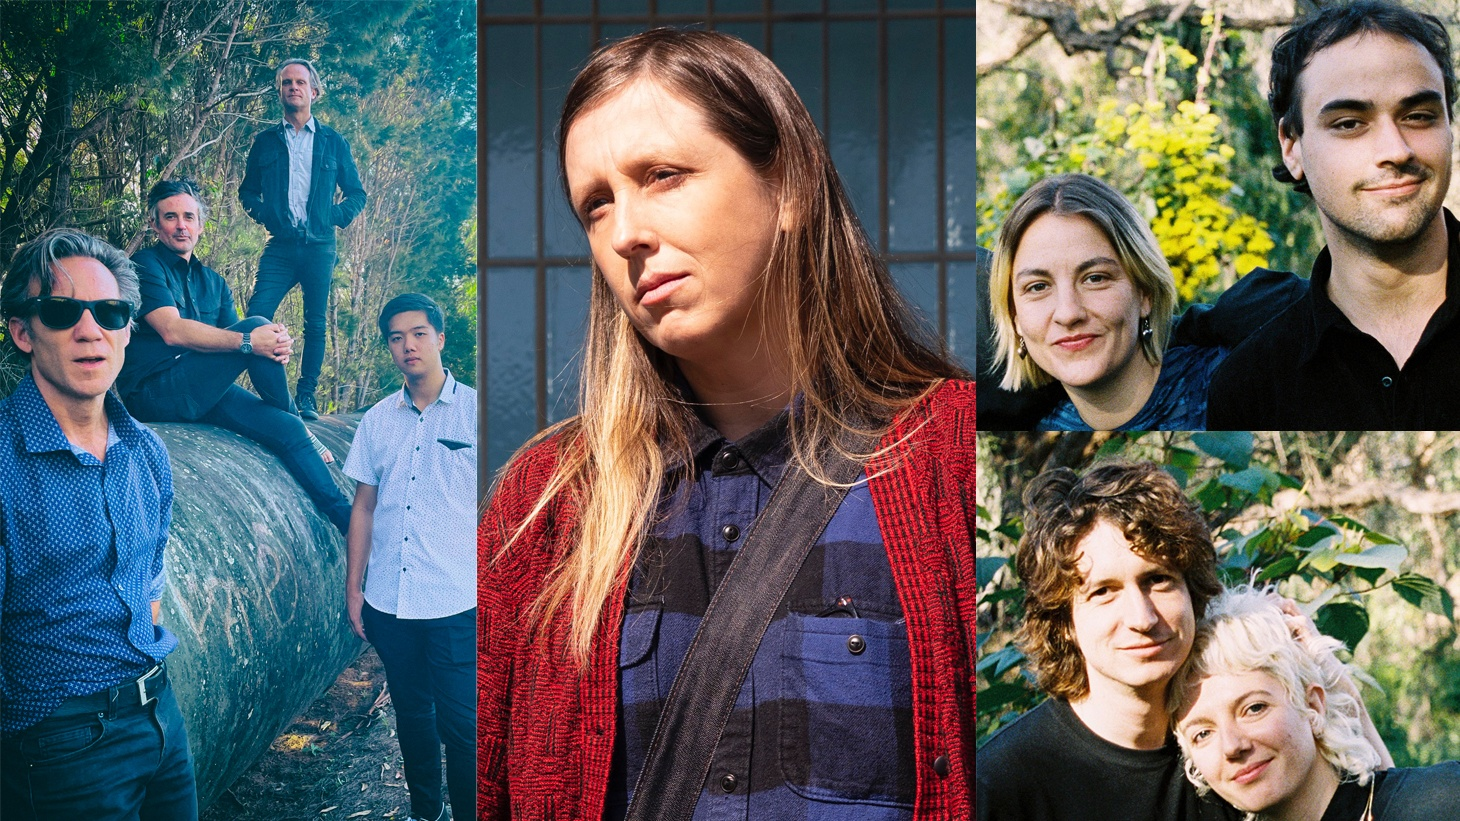 This week's Aussie artist spotlights on Infinity Broke, Larissa Tandy, and Snowy Band.